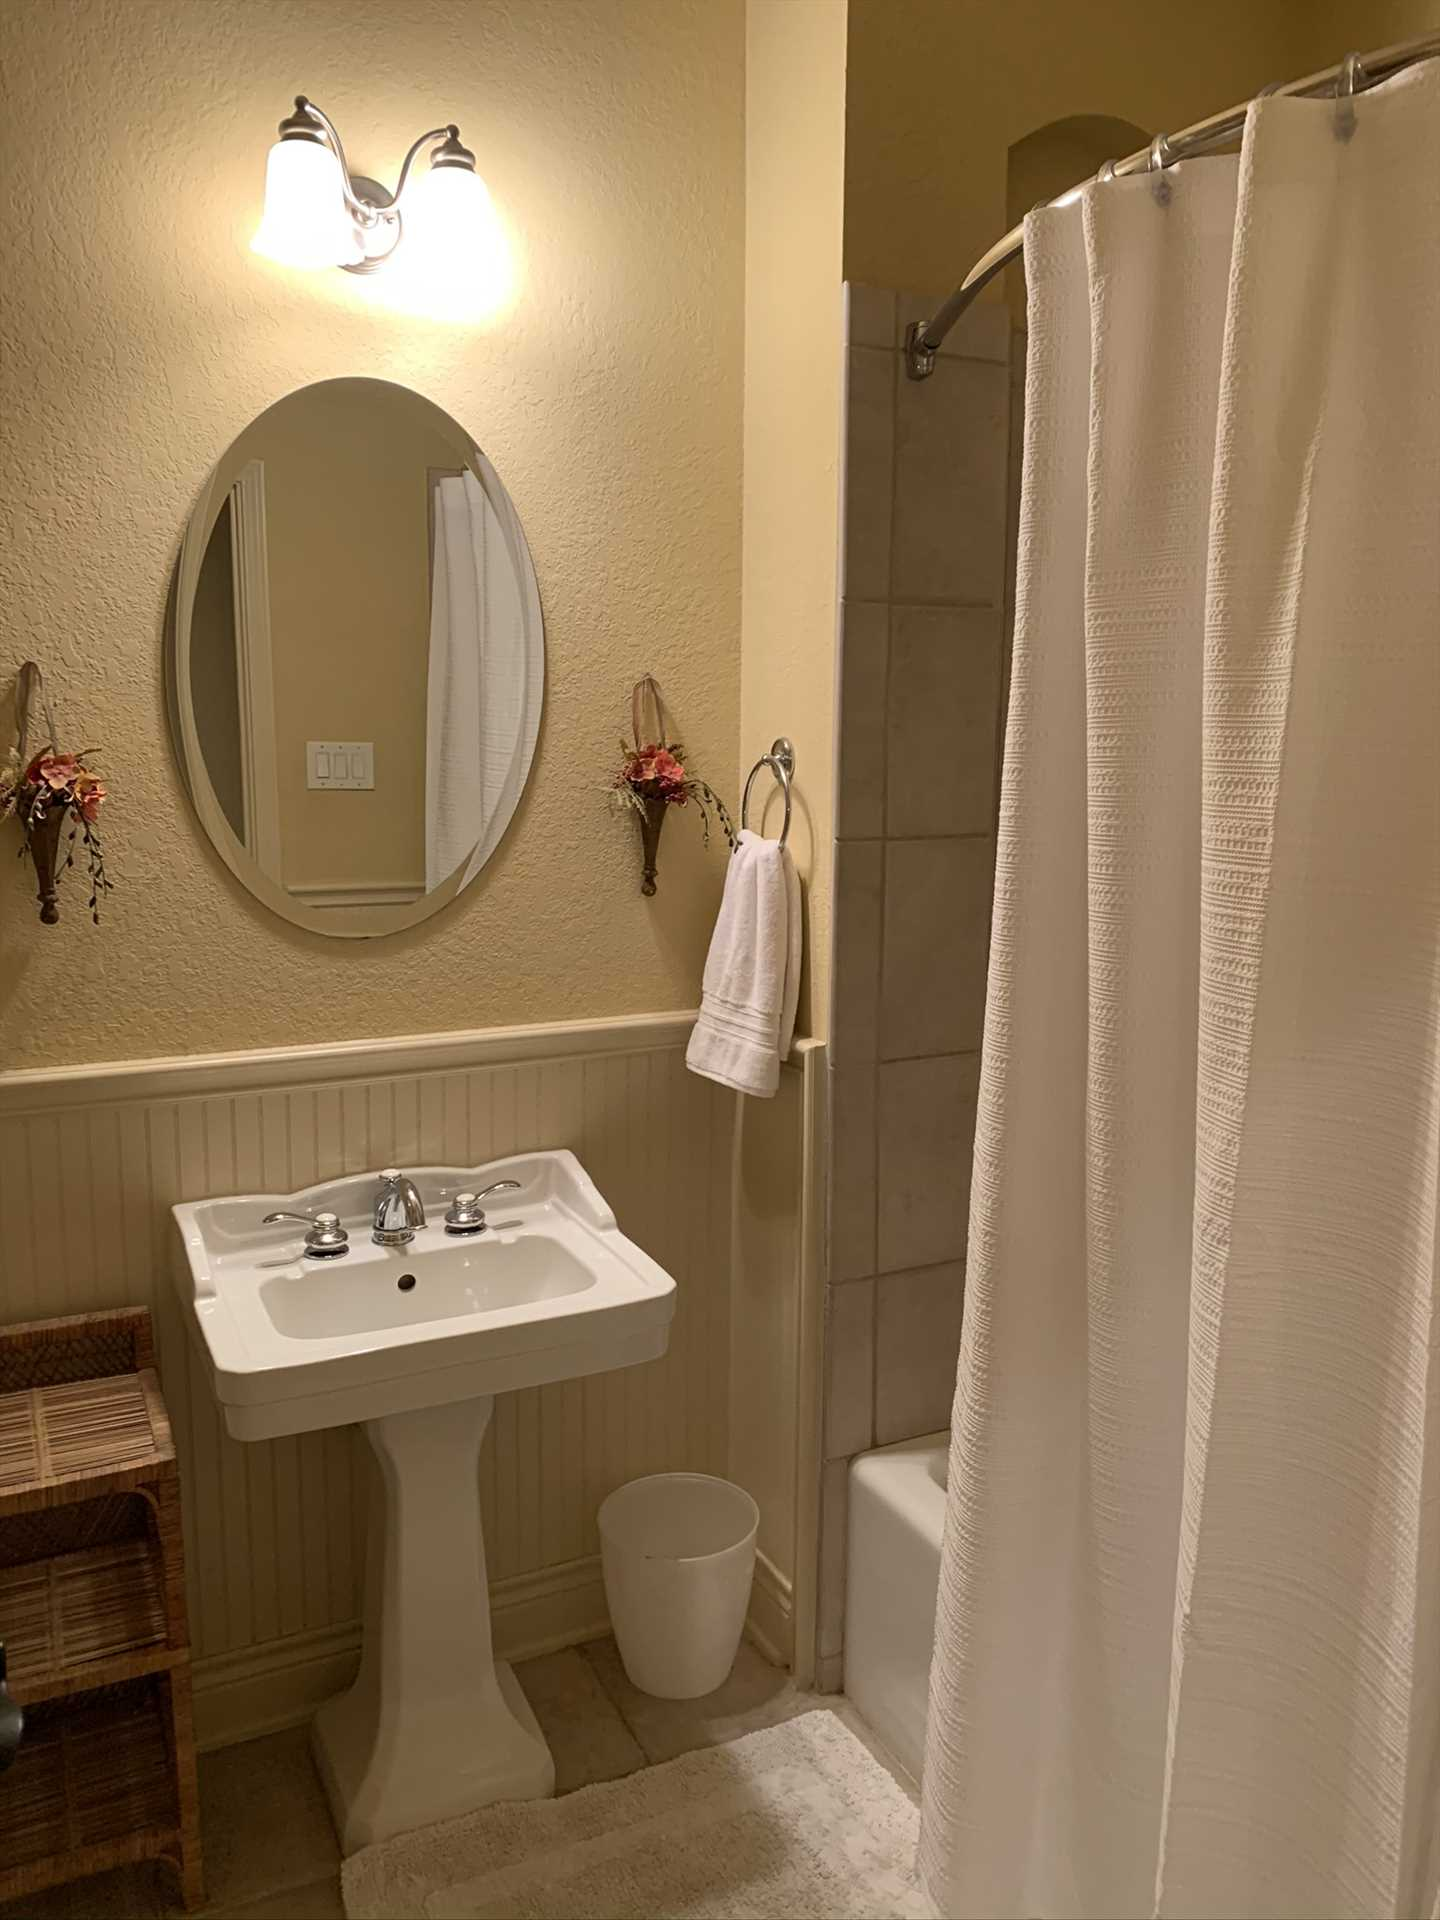 A second full bath, with a shower and tub combo, is located in the hallway convenient to the second and third bedrooms.